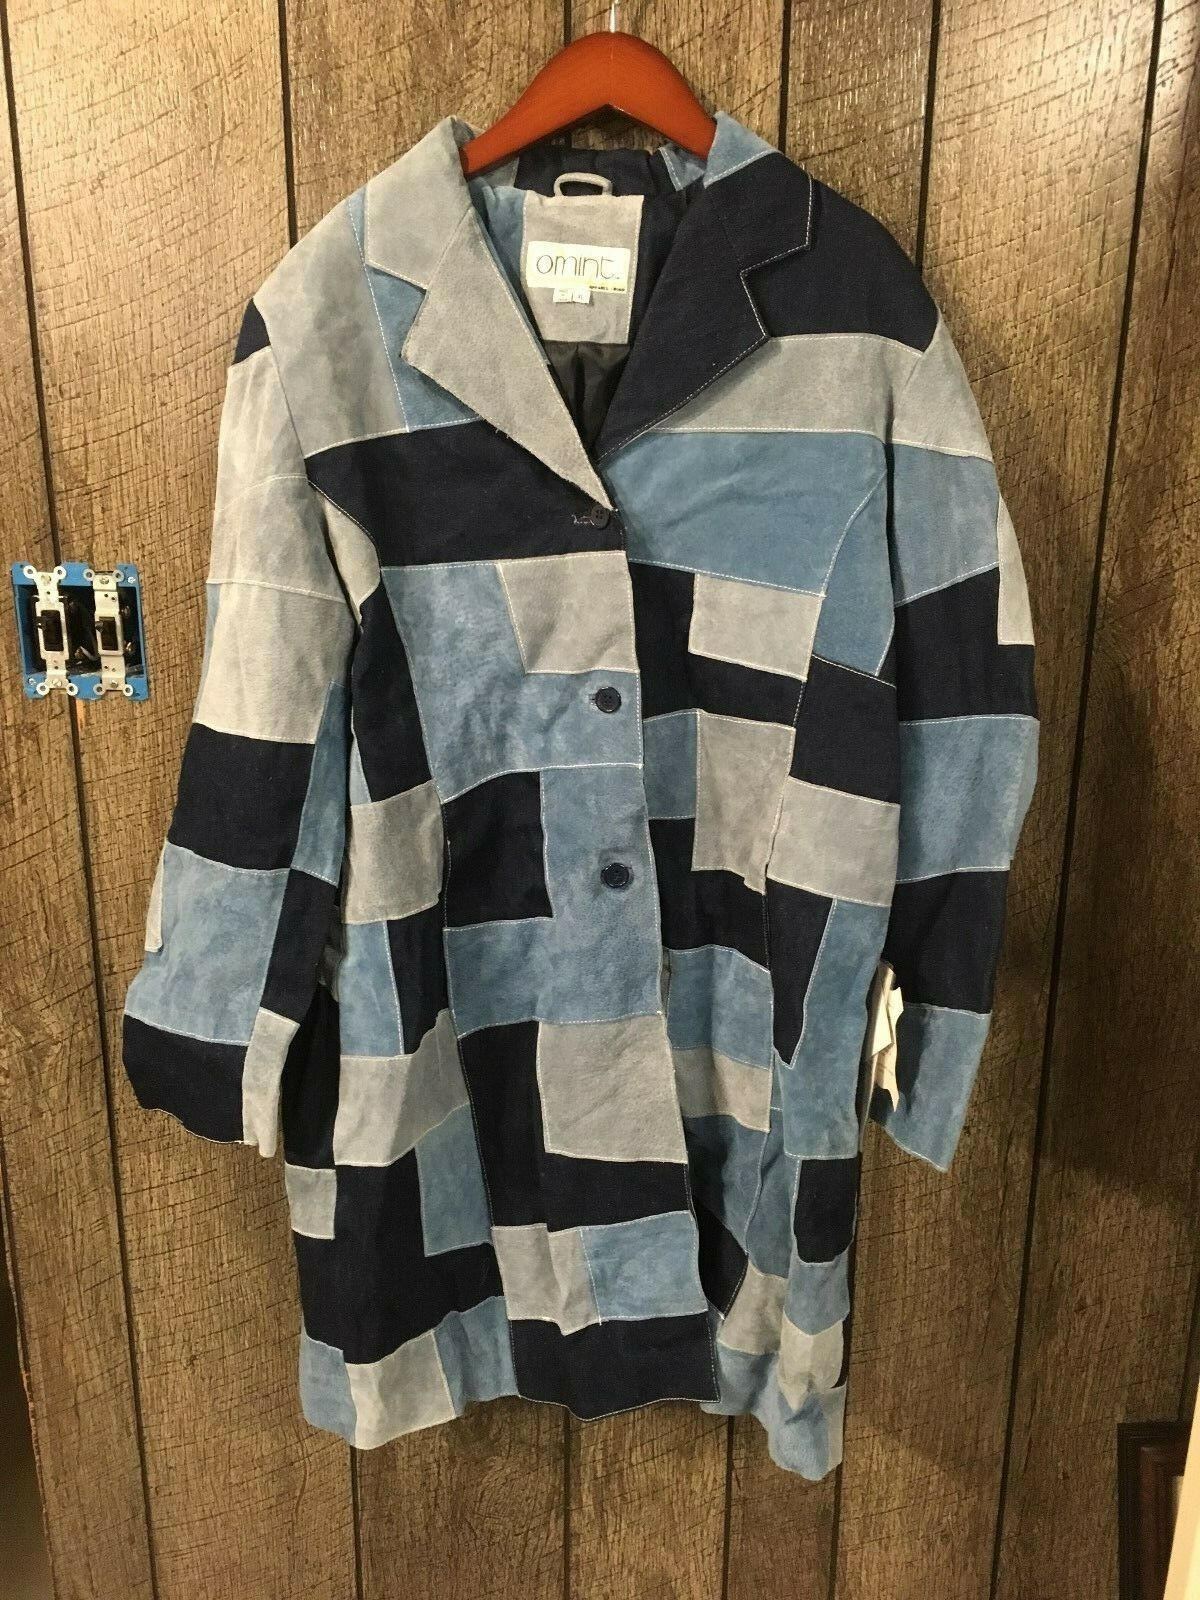 New Comint bluee Leather Patchwork 3 4 4 4 Length Coat Women's Size X-Large NWT a3aa50